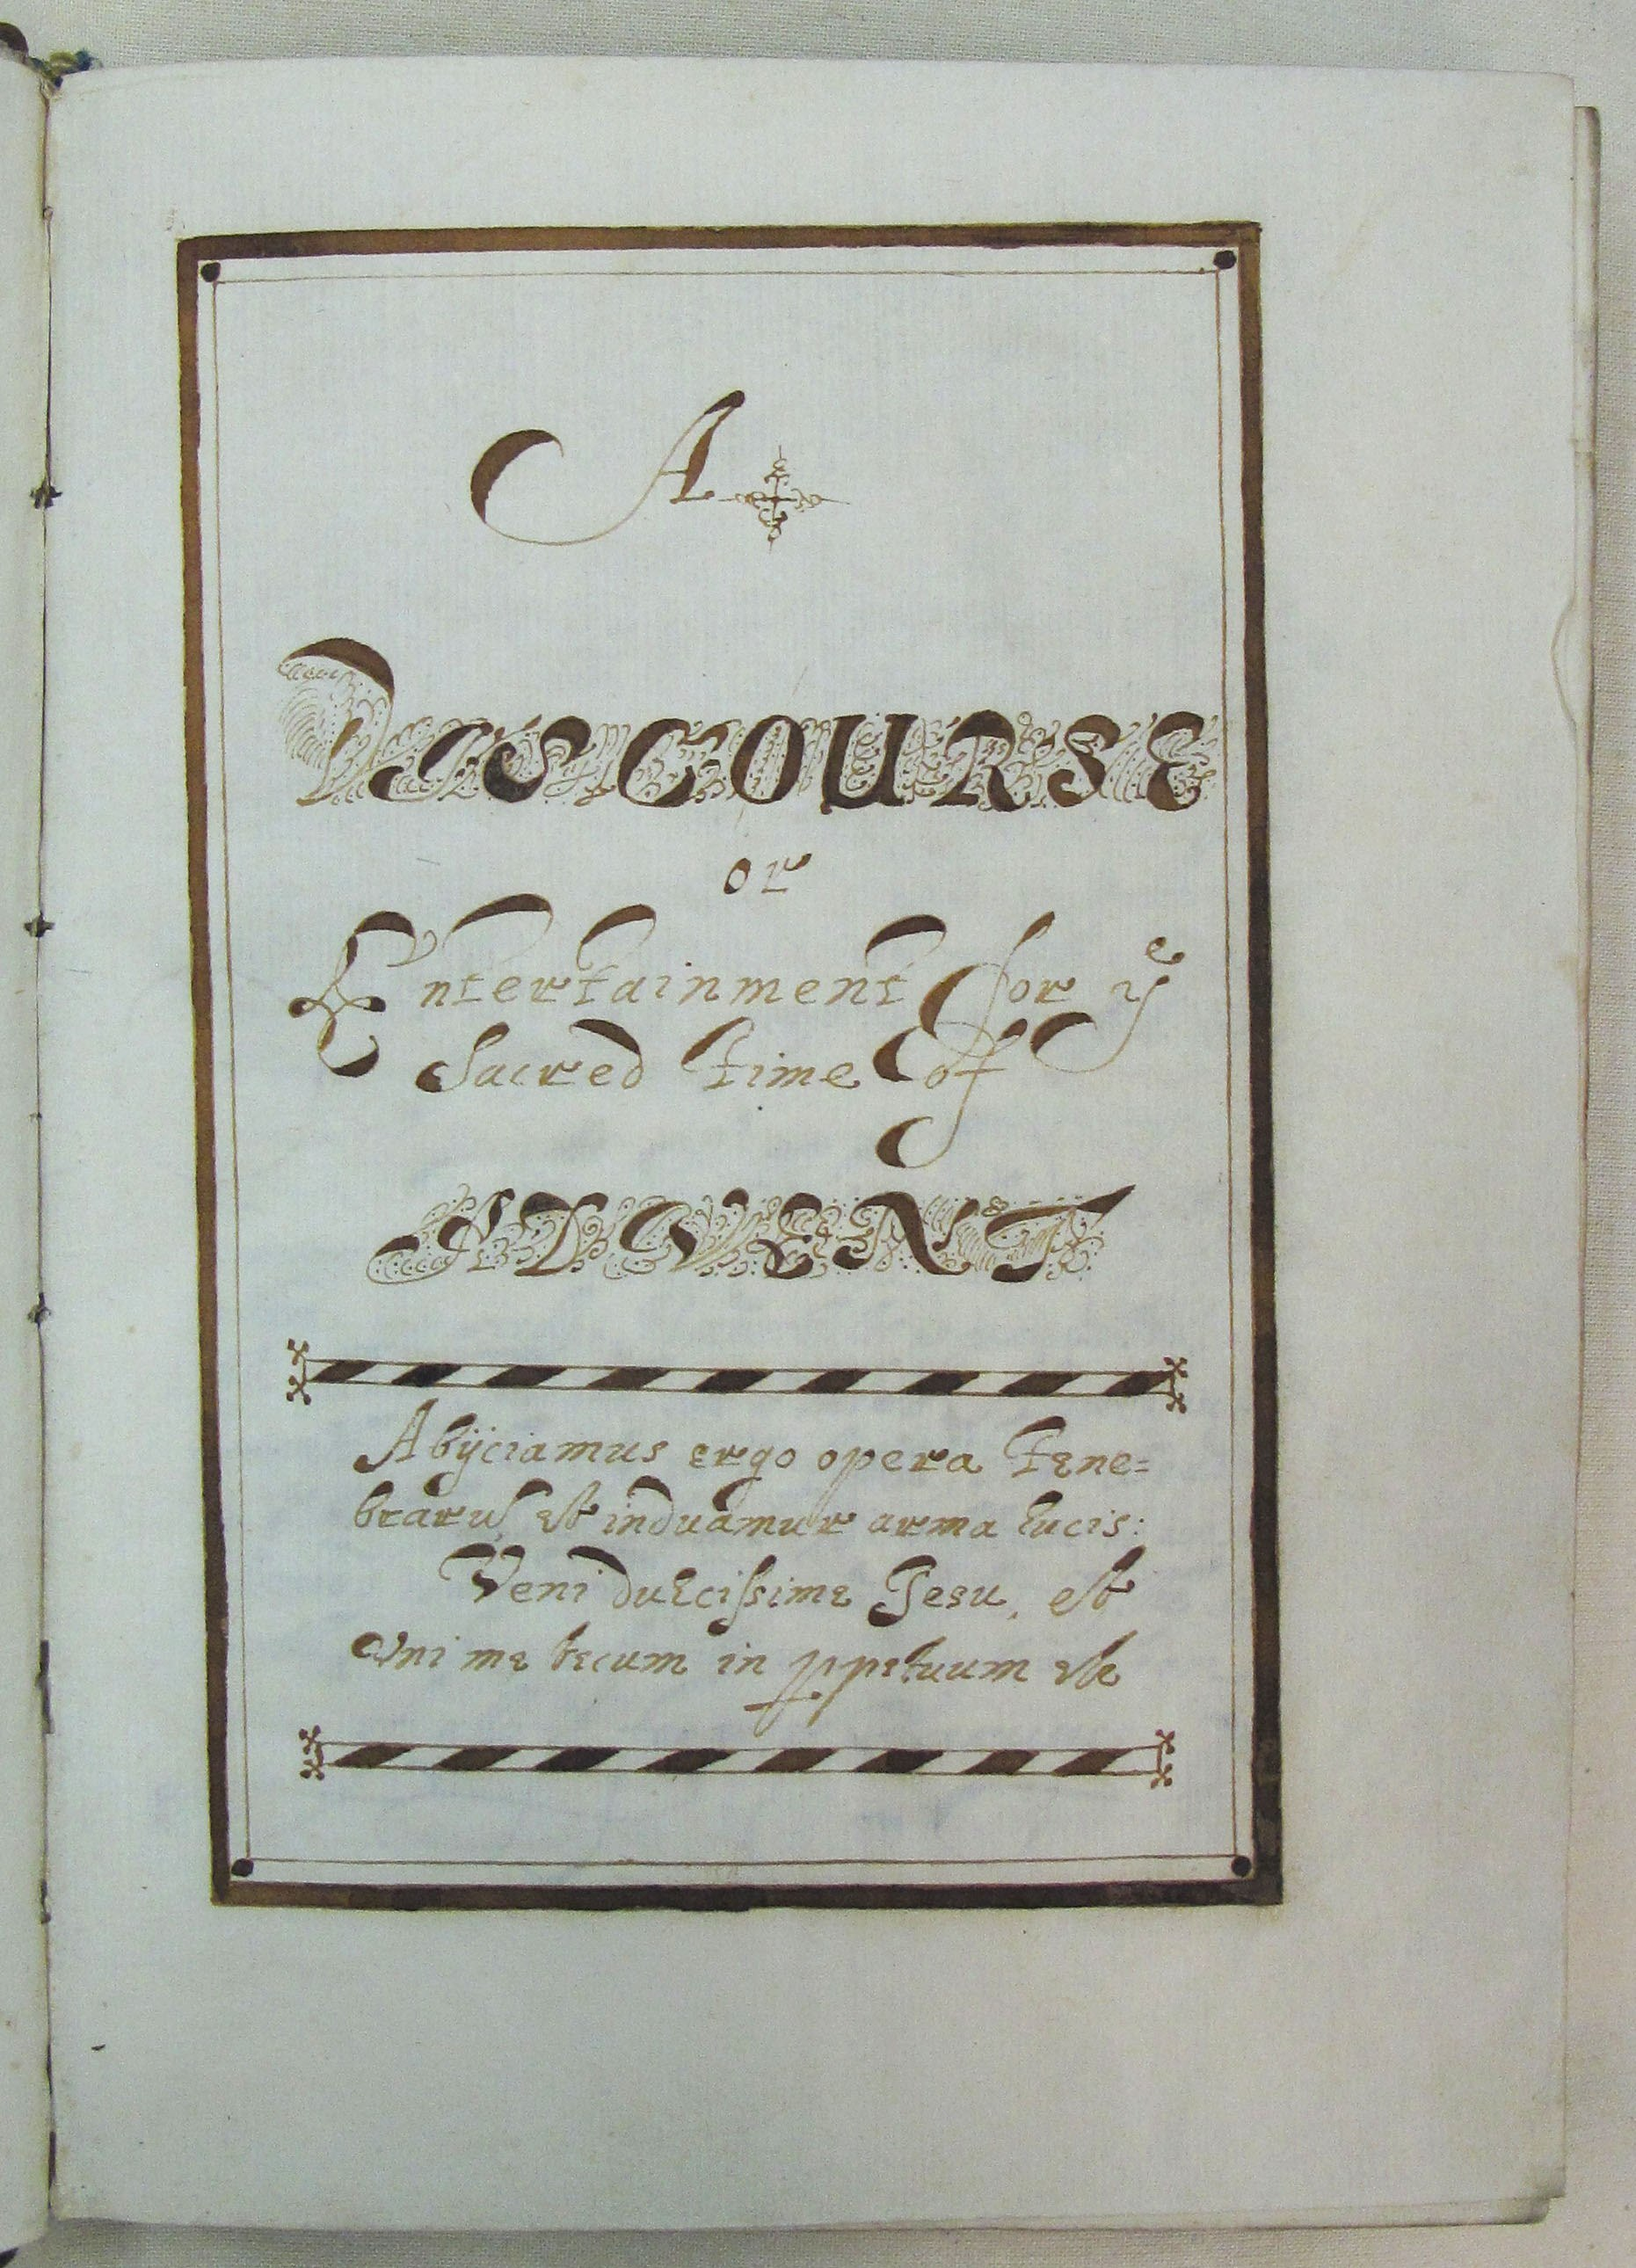 EUL MS 262/add1/5 - Title page of 'A Discourse or Entertainment for ye sacred time of Advent'